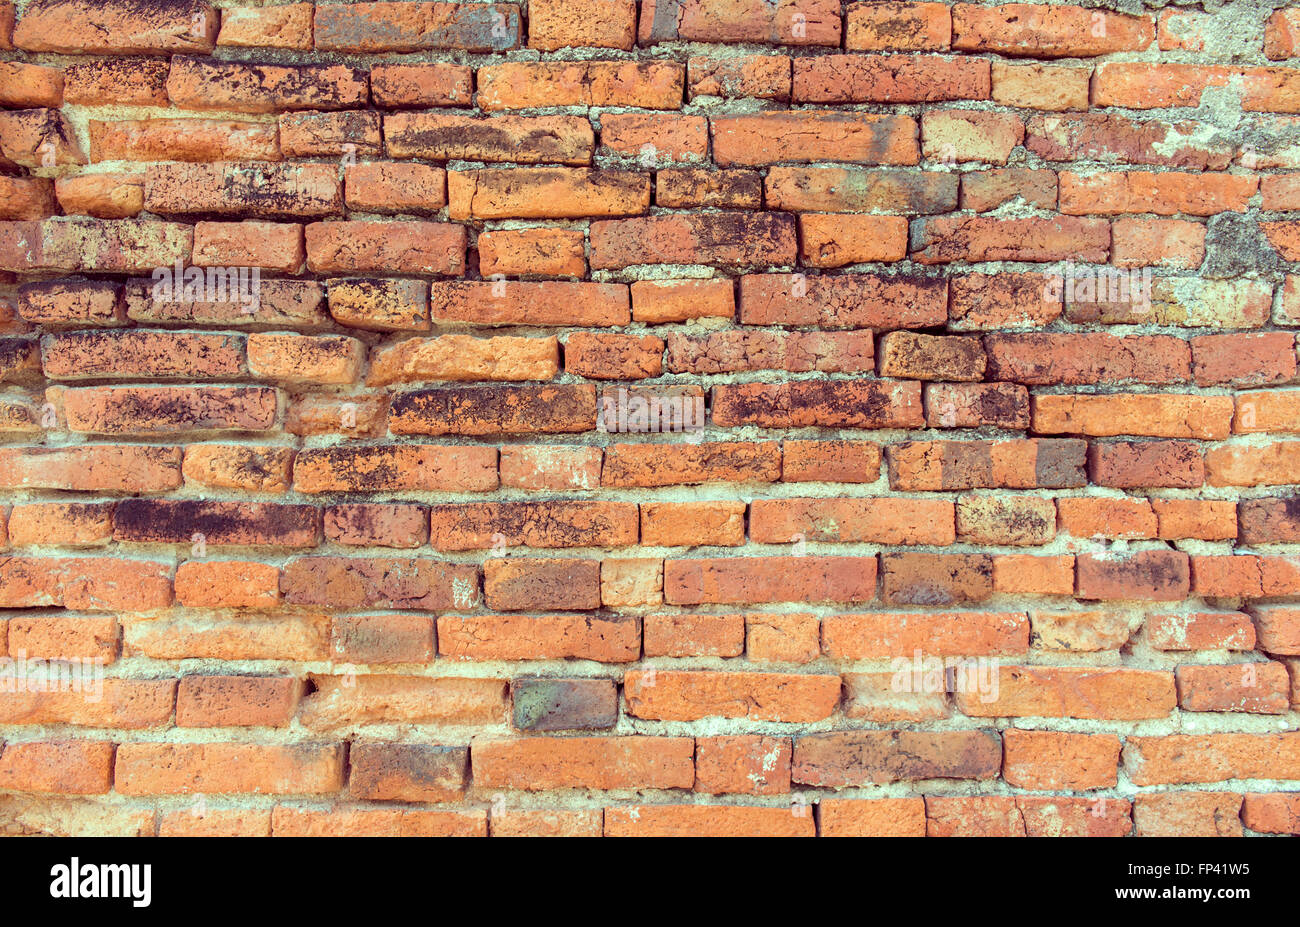 Ancient brick made from clay centuries-old. Stock Photo